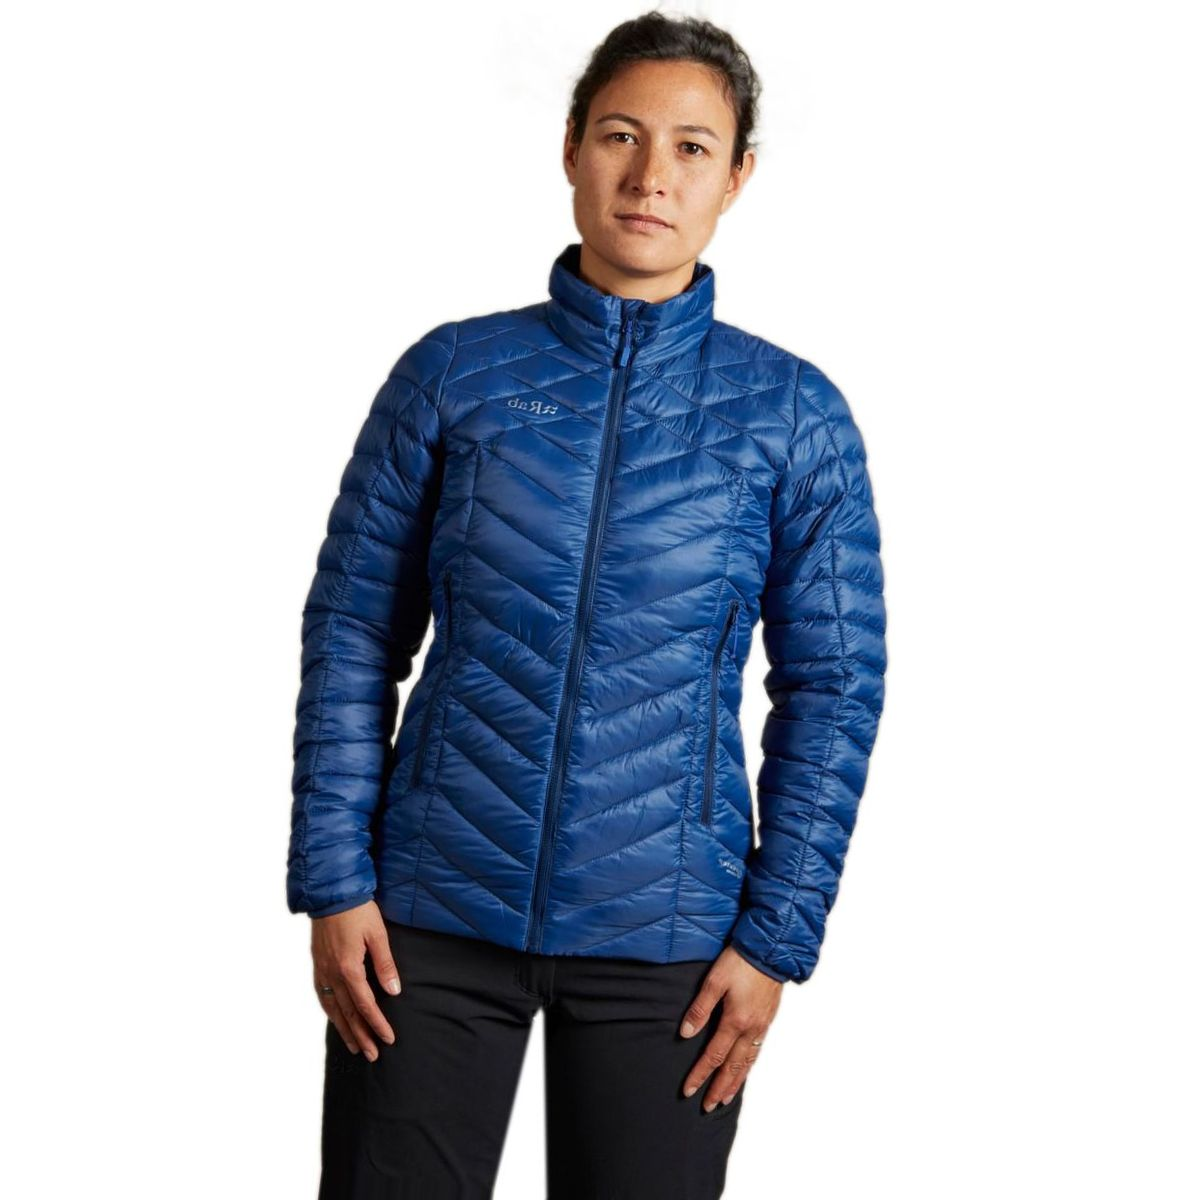 Rab Altus Jacket - Women's